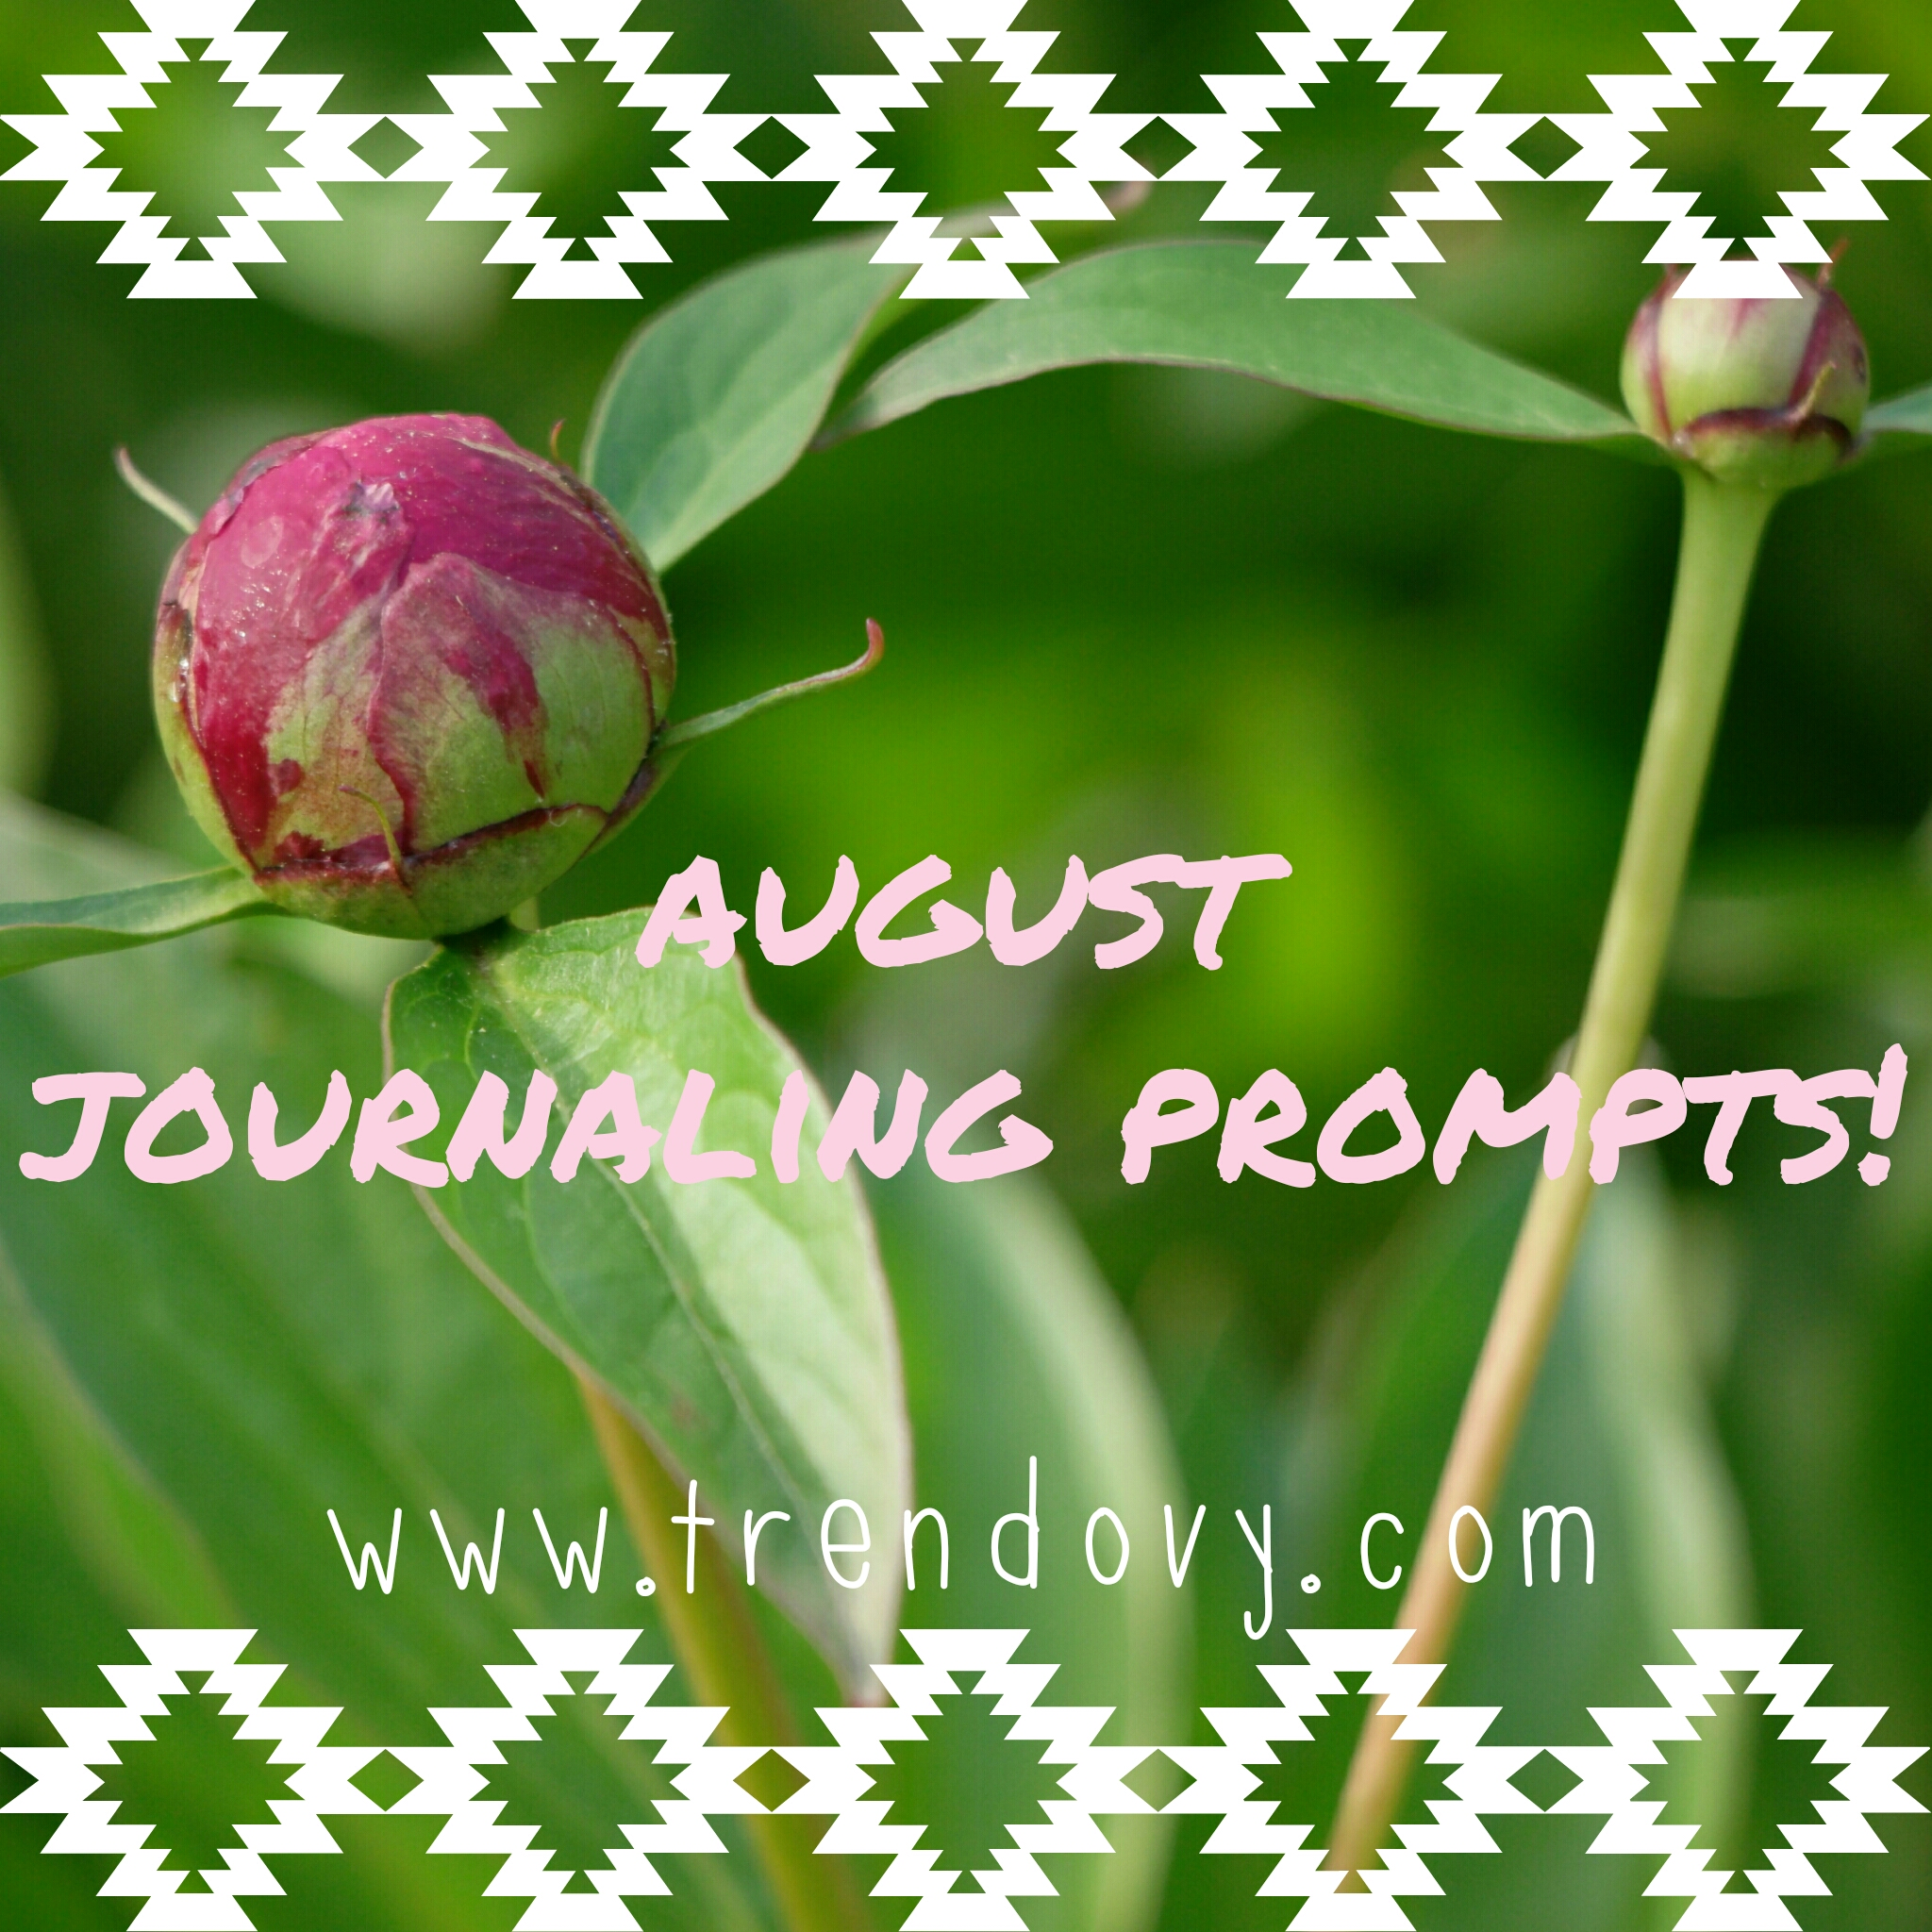 journaling prompts. 31 journaling prompts. august journaling prompts. monthly journal prompts. journal prompts. journal questions